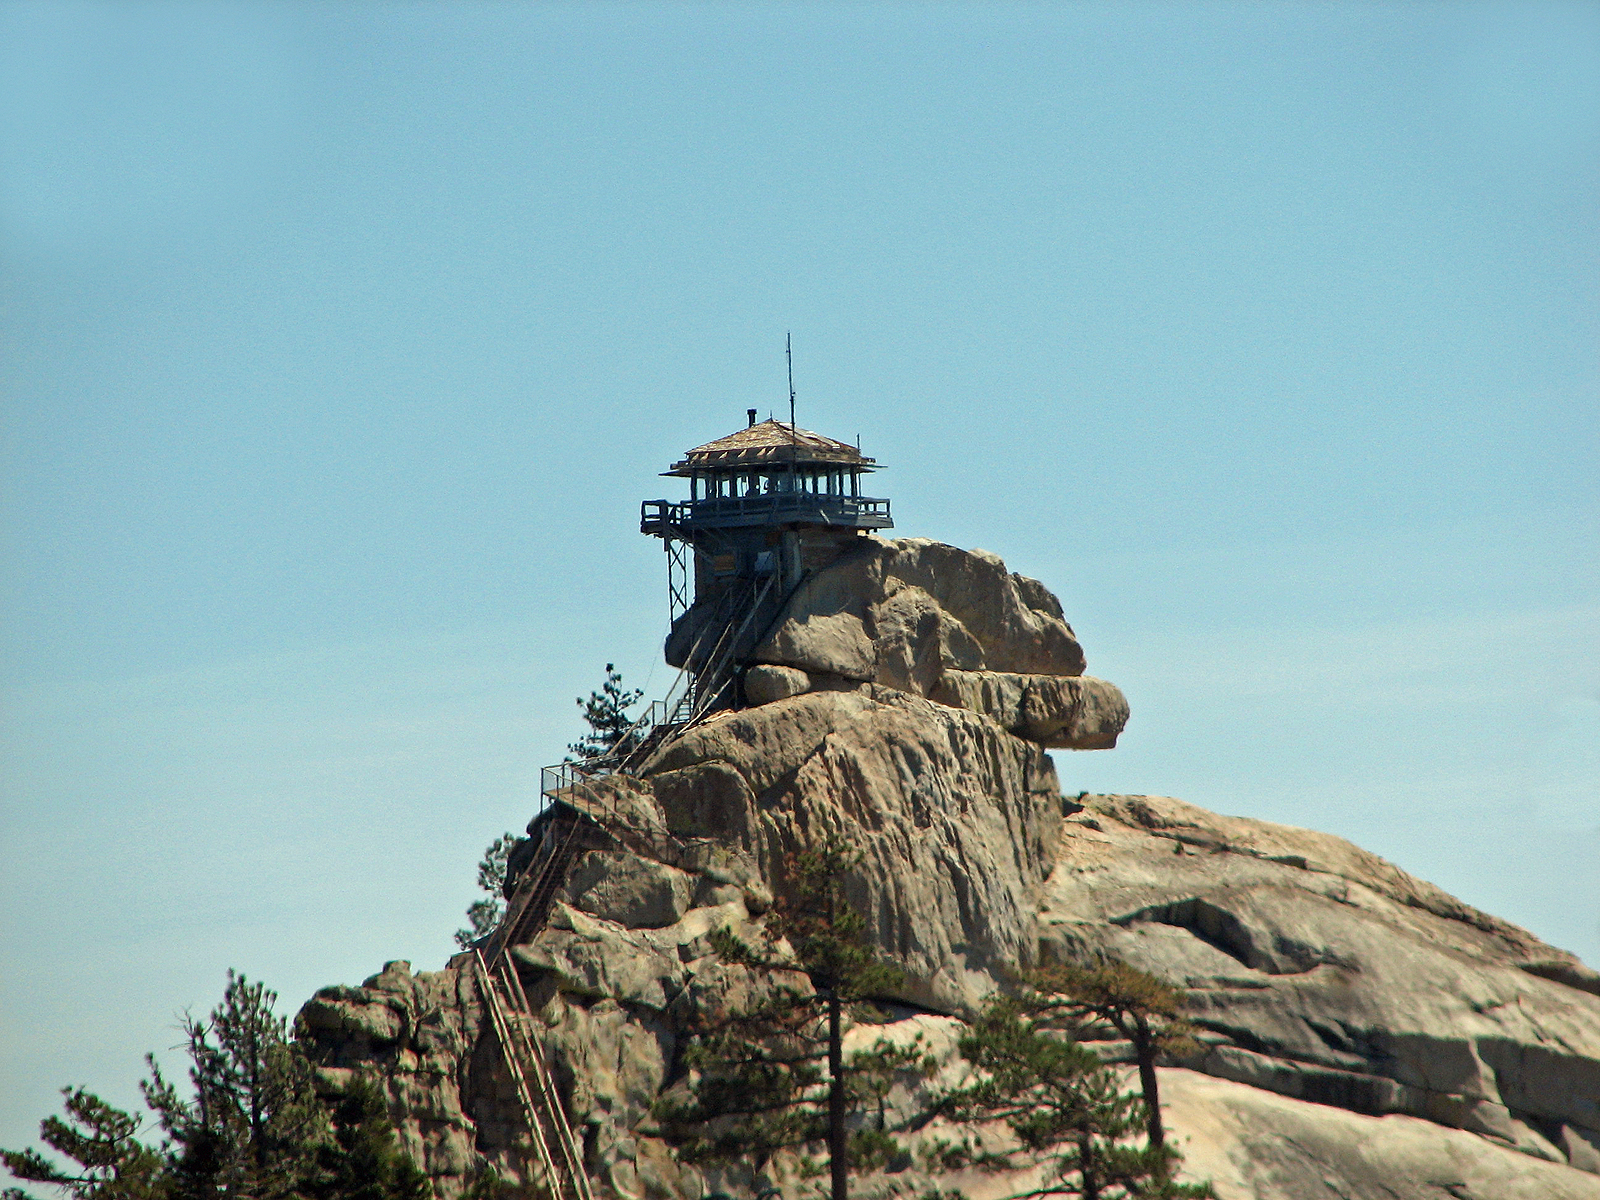 Needles Fire Watch Lookout Tower, Bspo06, Cliff, Construction, Fire, HQ Photo